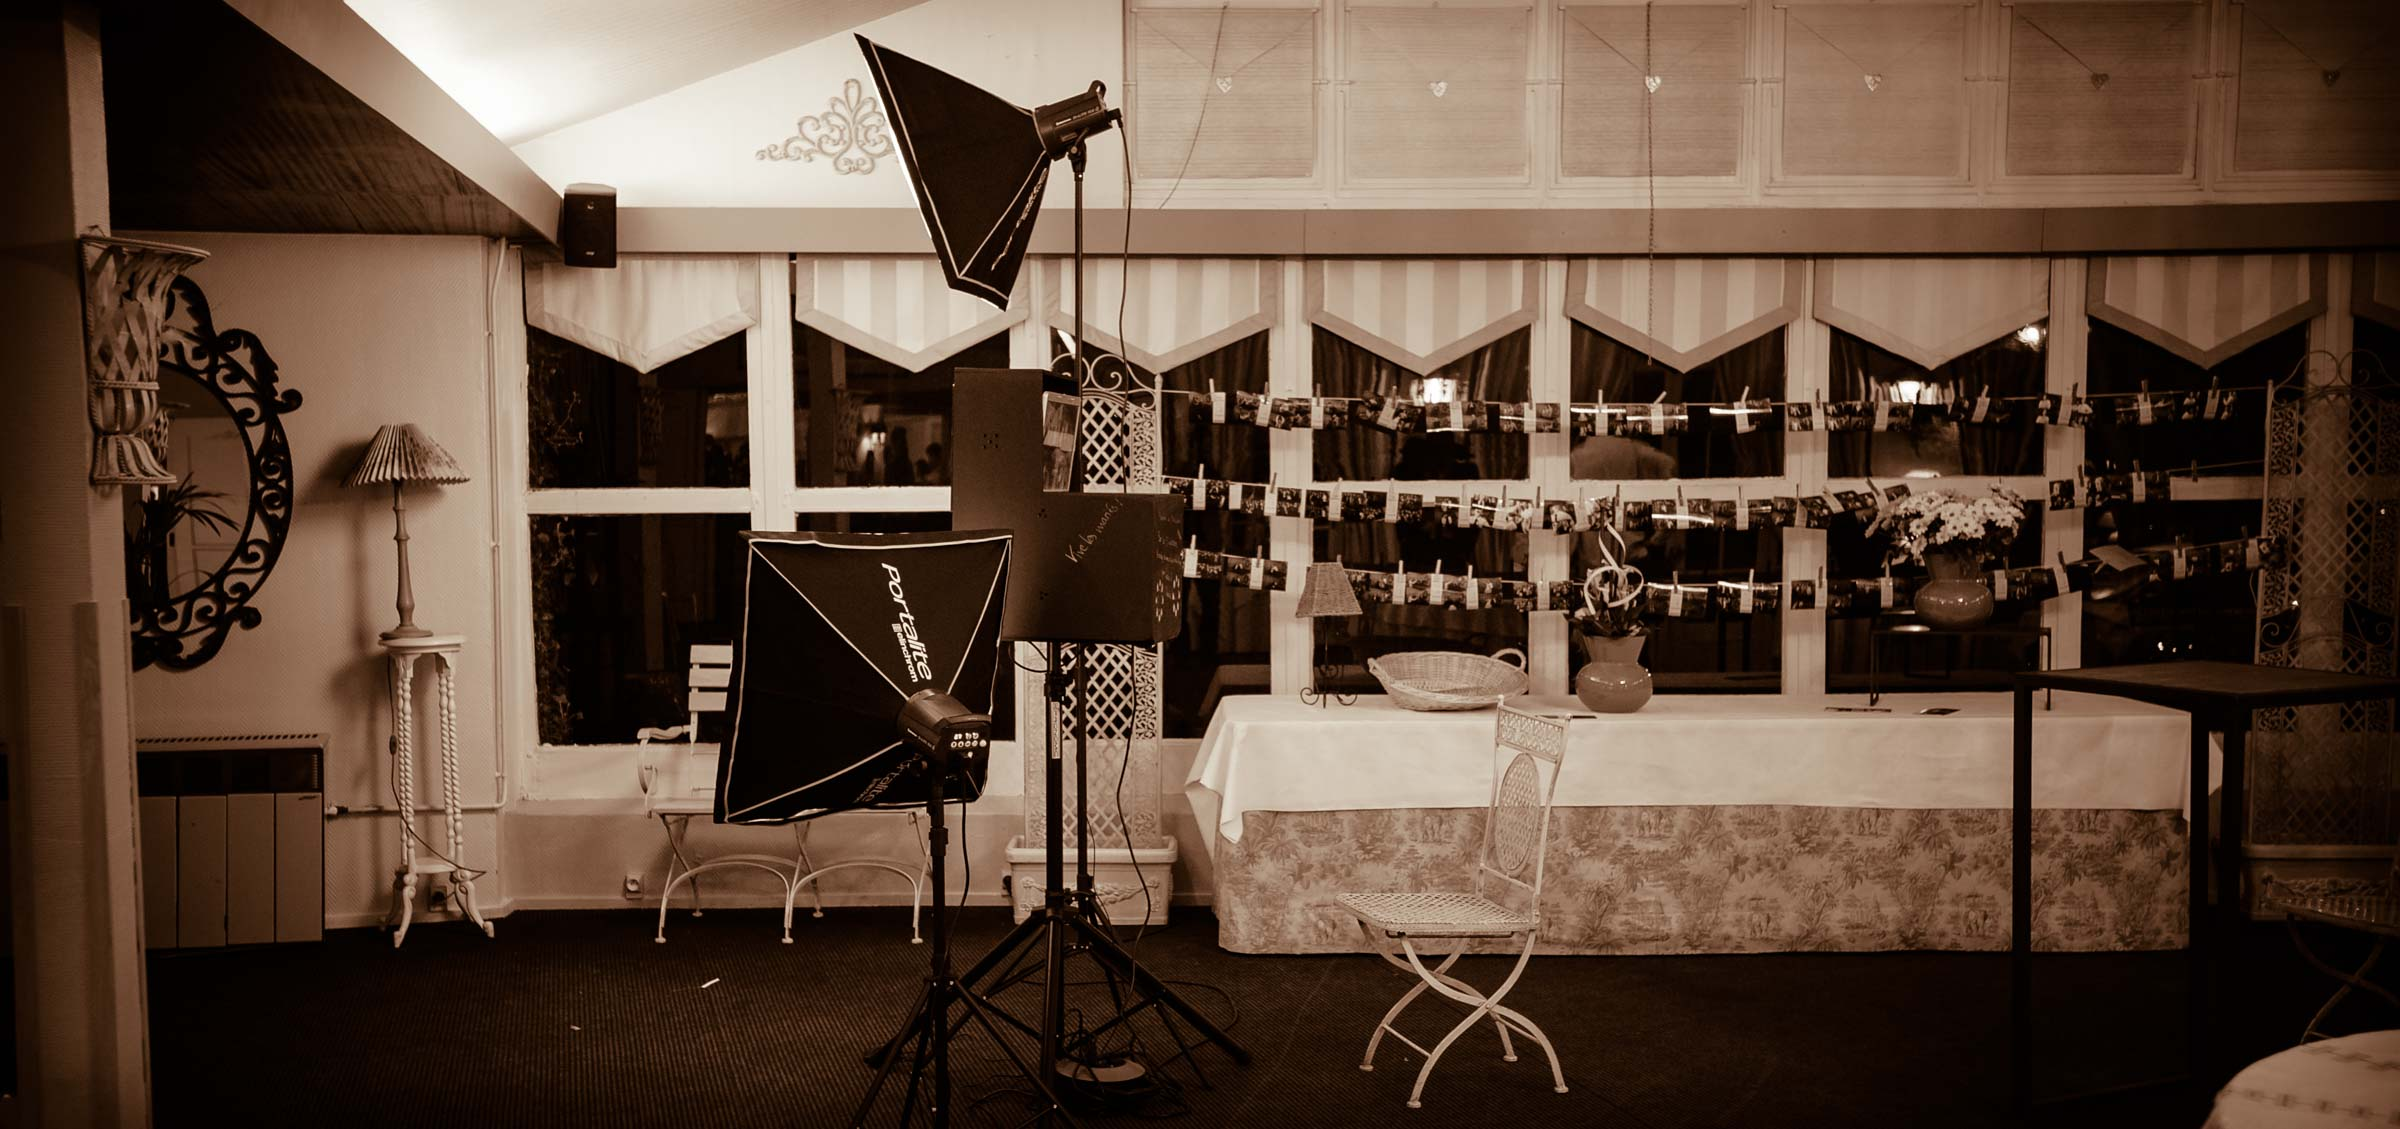 Photobooth mariage alsace